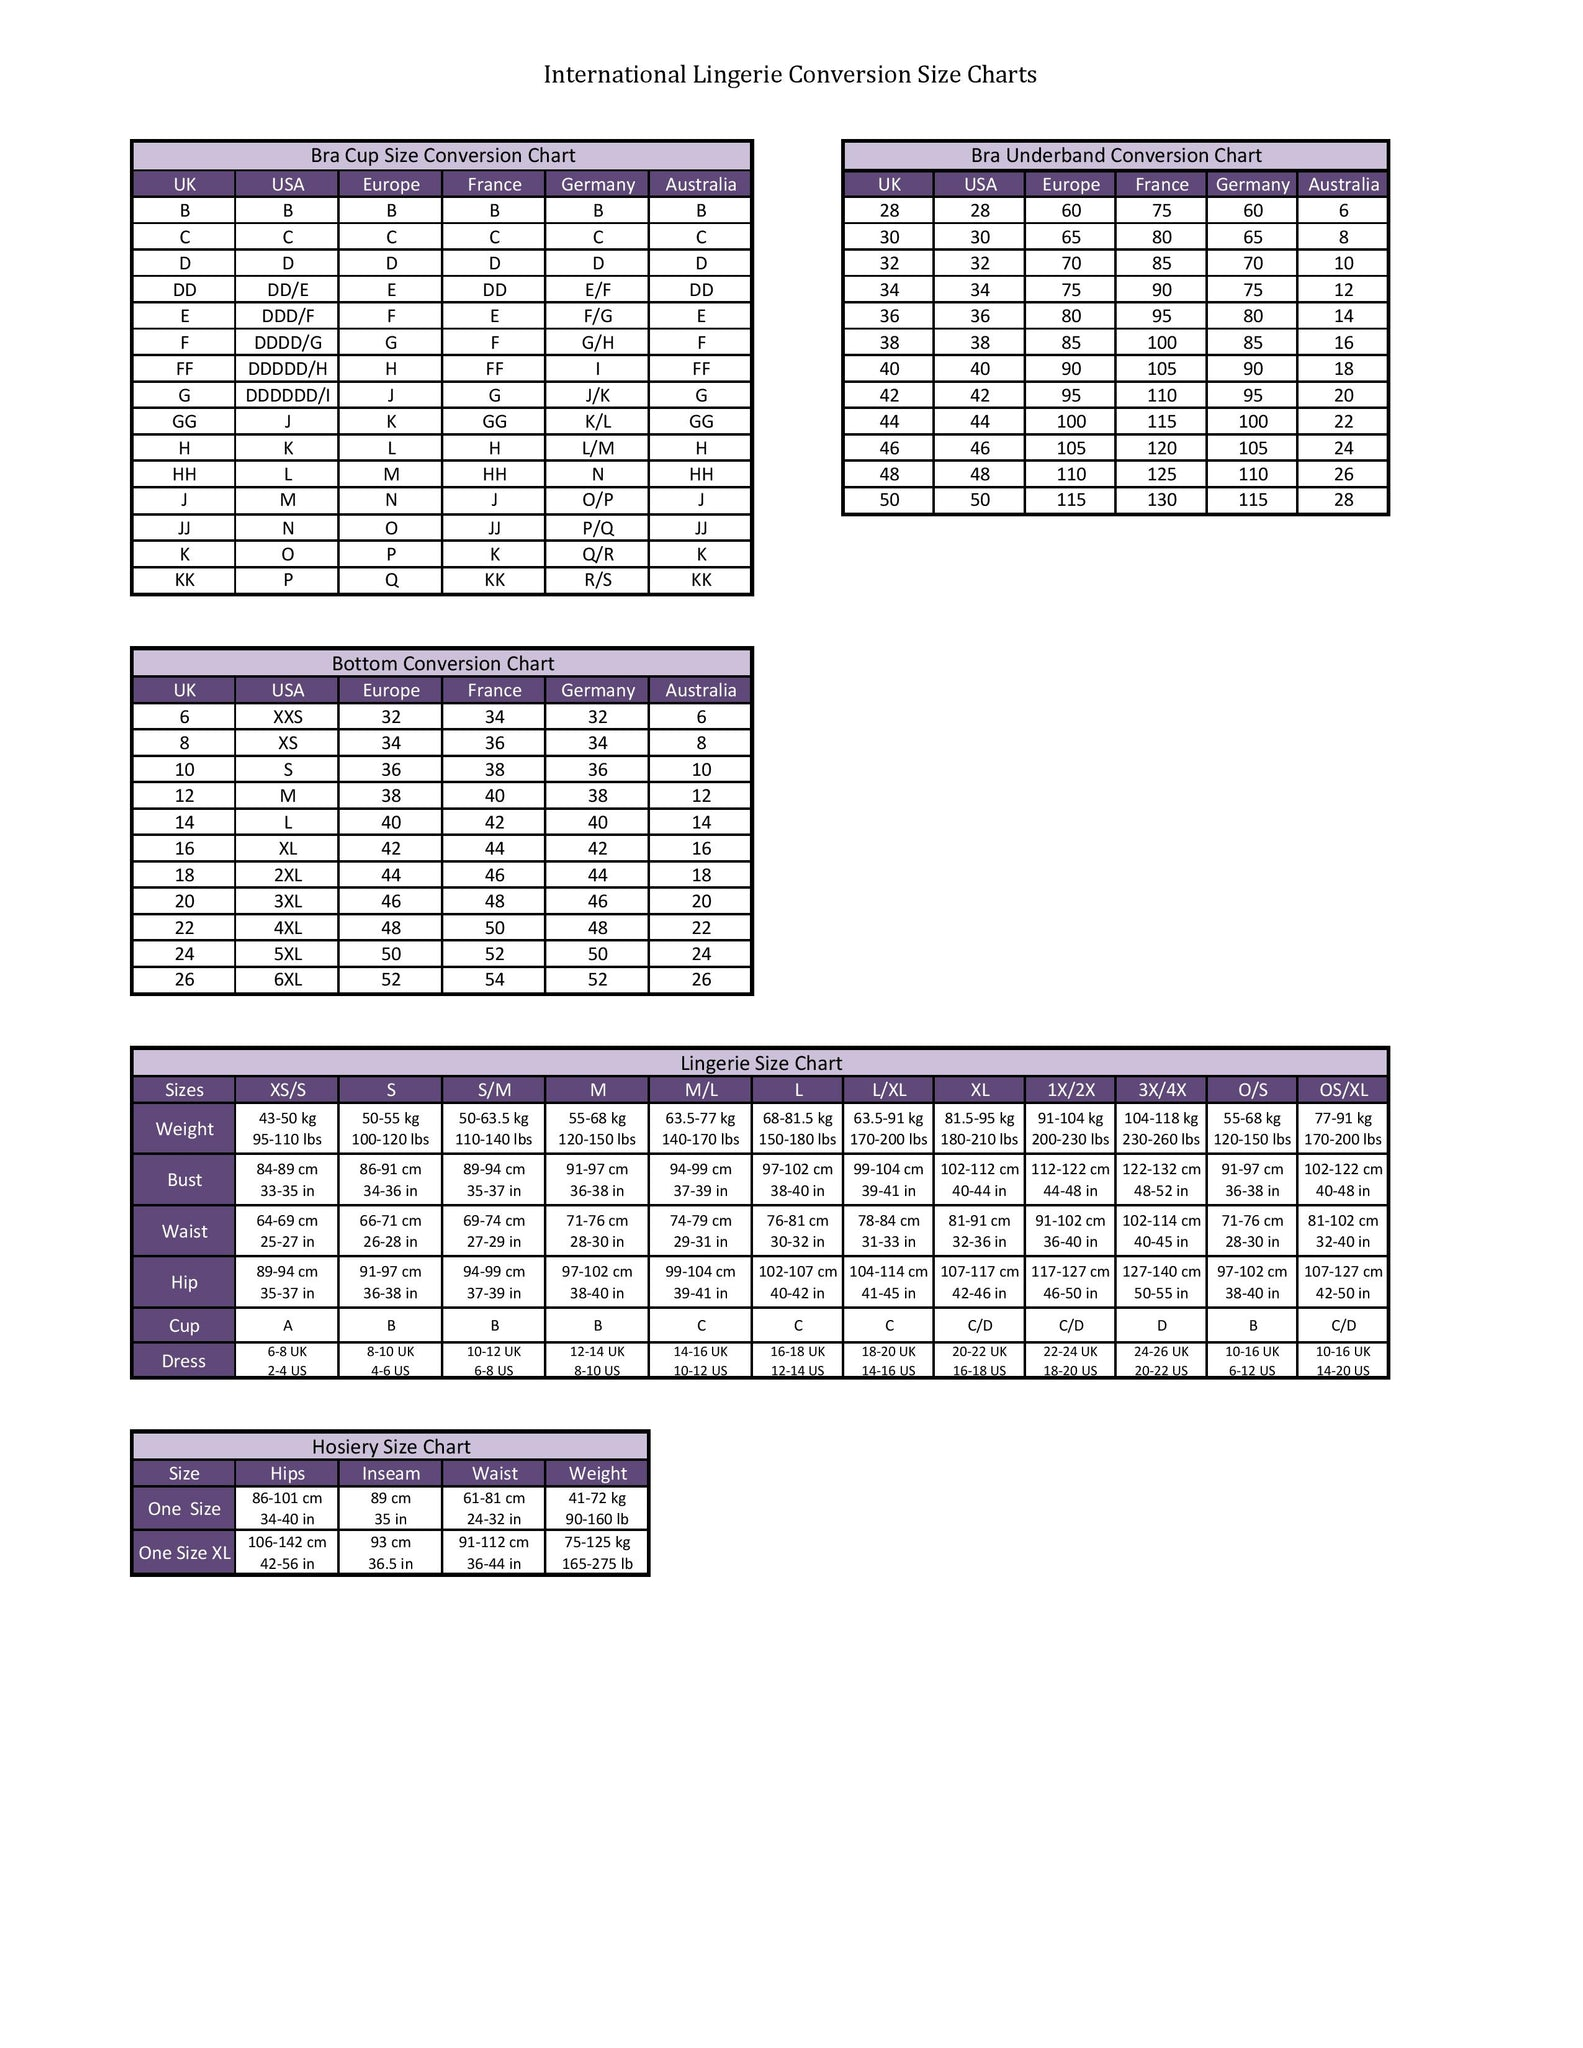 Lingerie-Bra-Hosiery-International-Sizing-Conversion-Chart